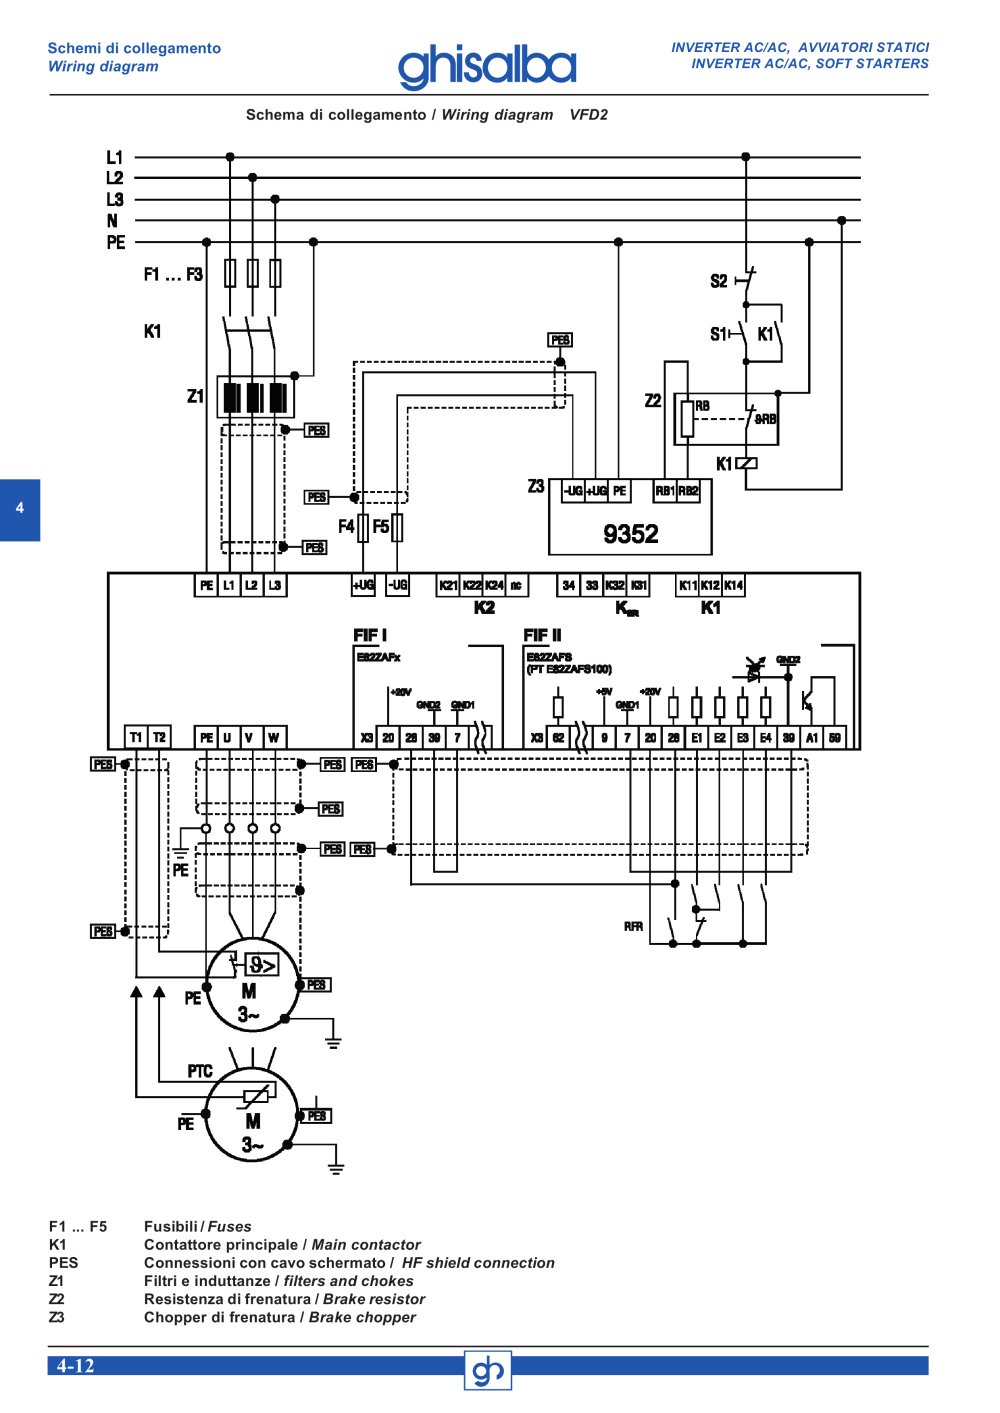 siemens soft starter wiring diagram siemens soft starter elevator wiring diagrams techwomen co